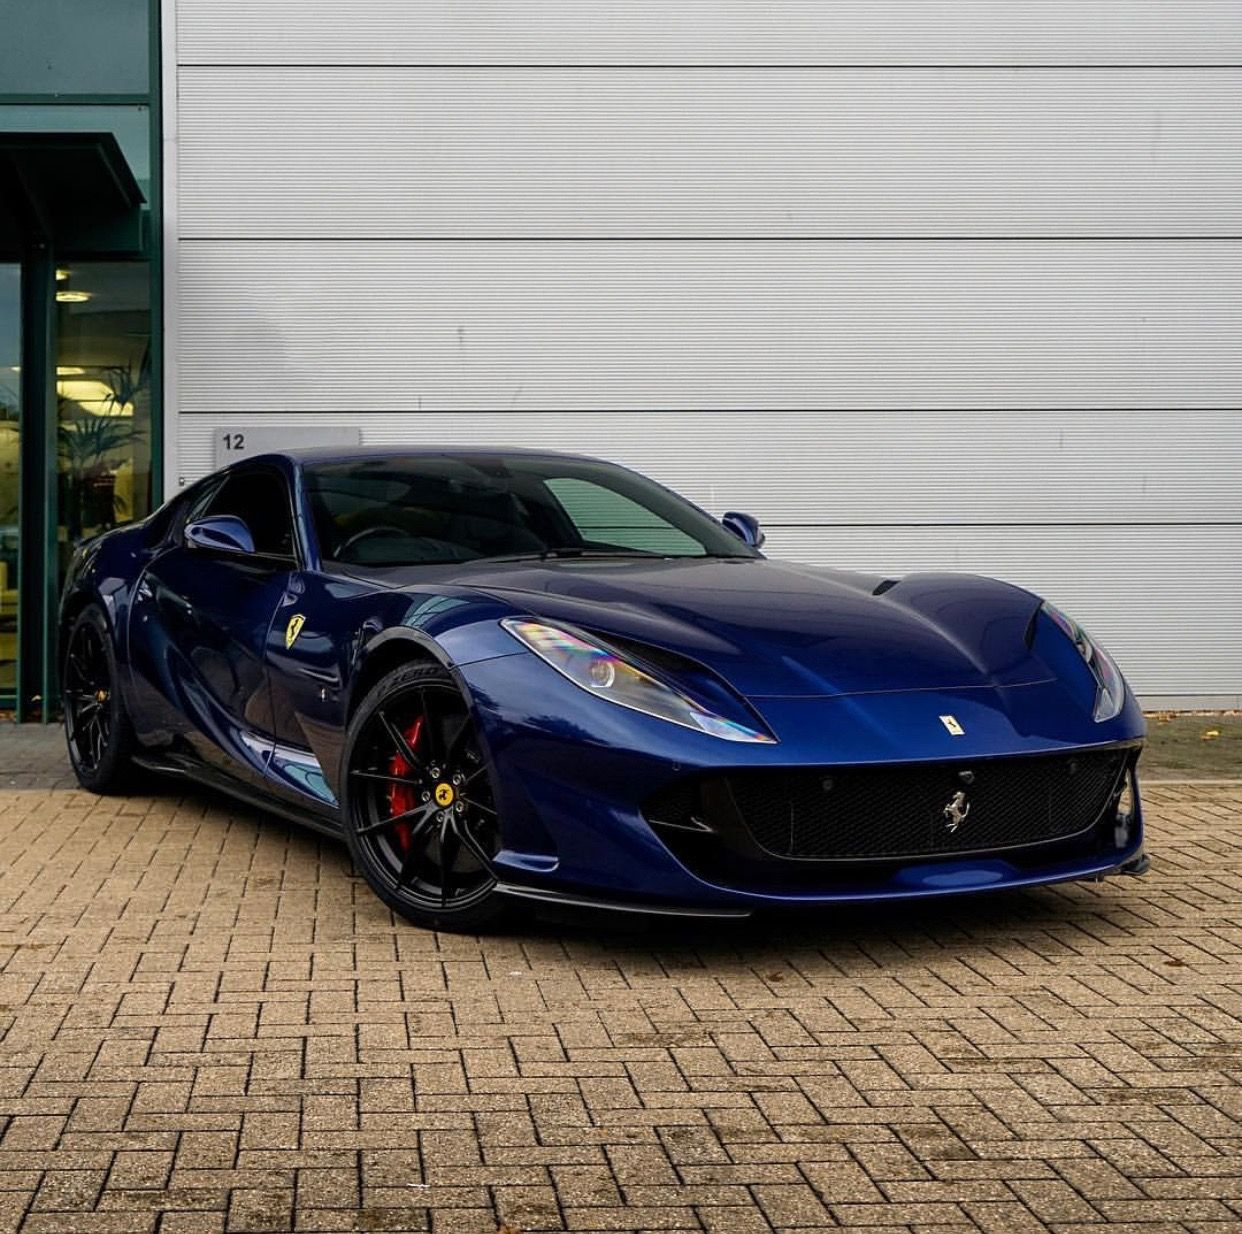 Ferrari 812 Superfast: Ferrari 812 Superfast Painted In Tour De France Blue Photo